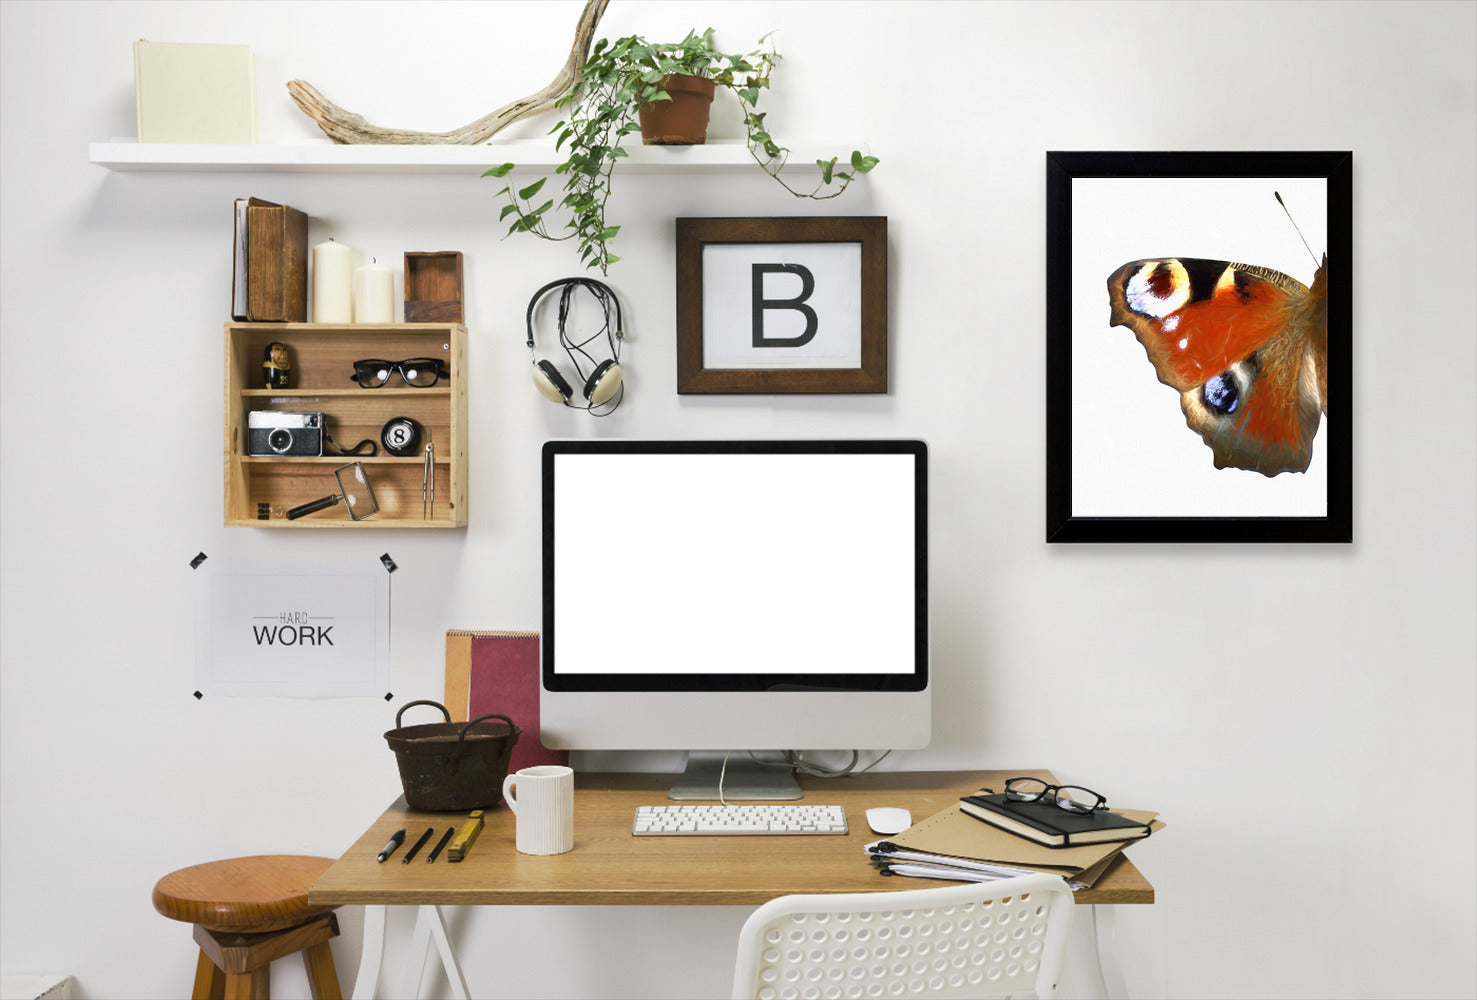 Peacock Butterfly Wing I By Chaos & Wonder Design - Black Framed Print